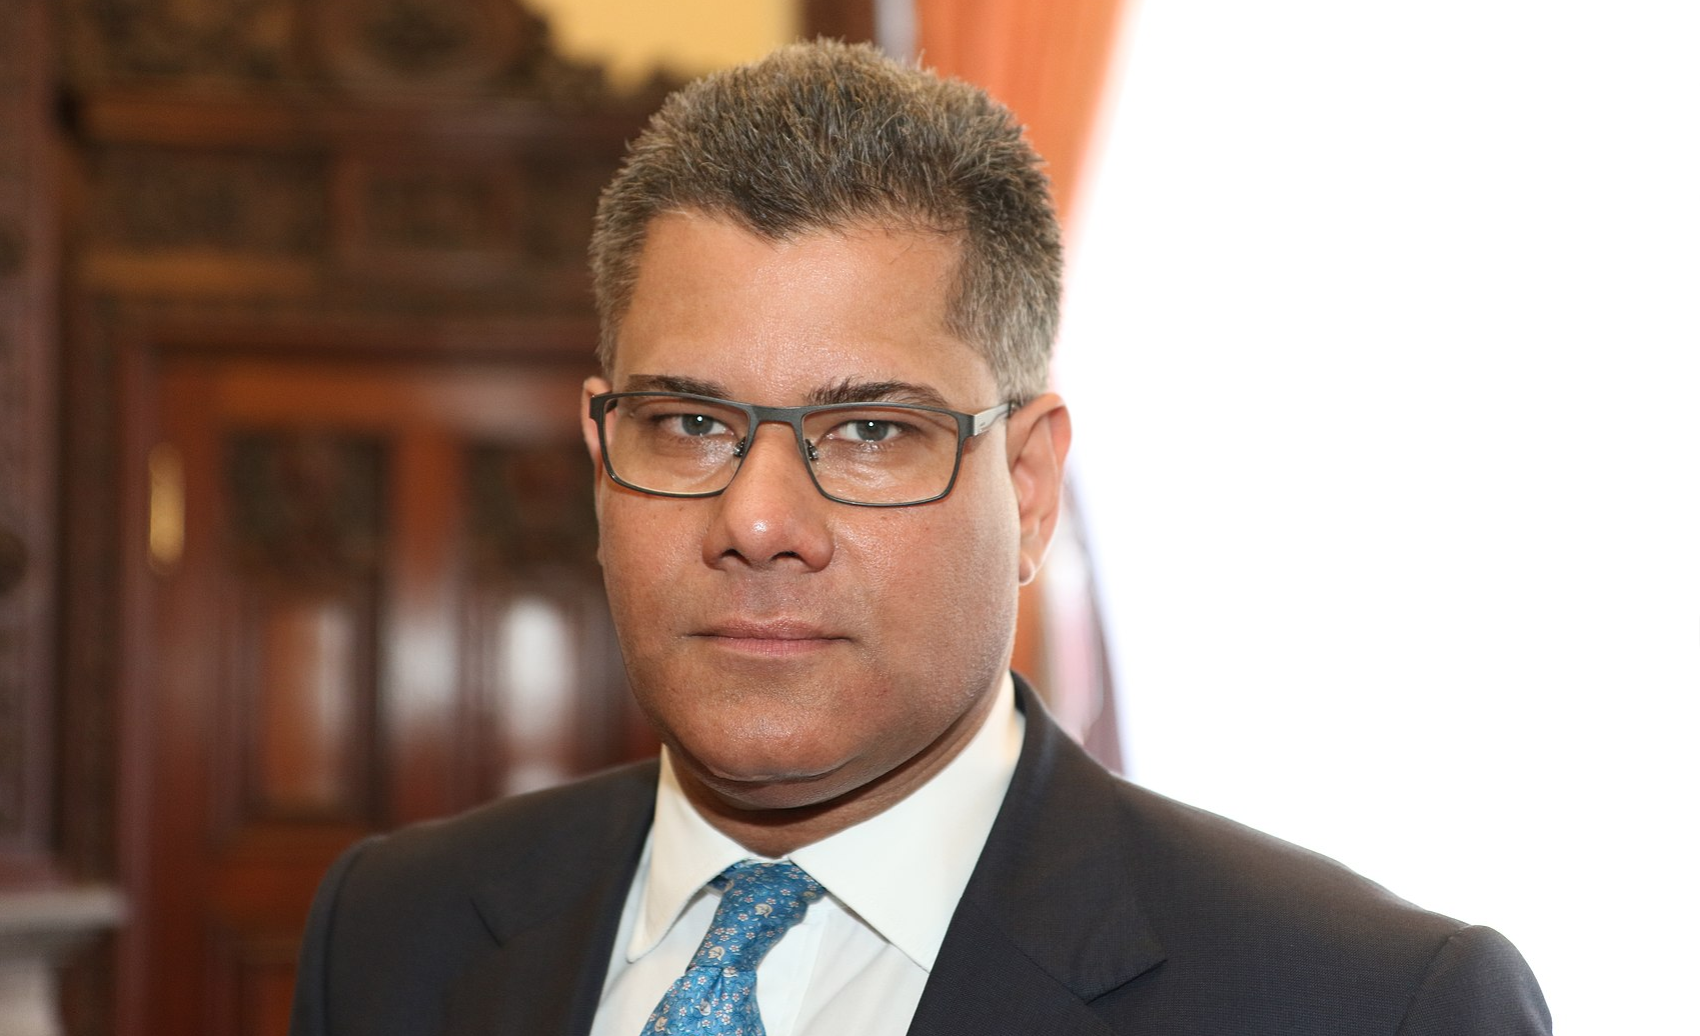 Above: Secretary of State for Business, Energy and Industrial Strategy, Alok Sharma are among those to have been contacted on issues and concerns for the greeting card industry.